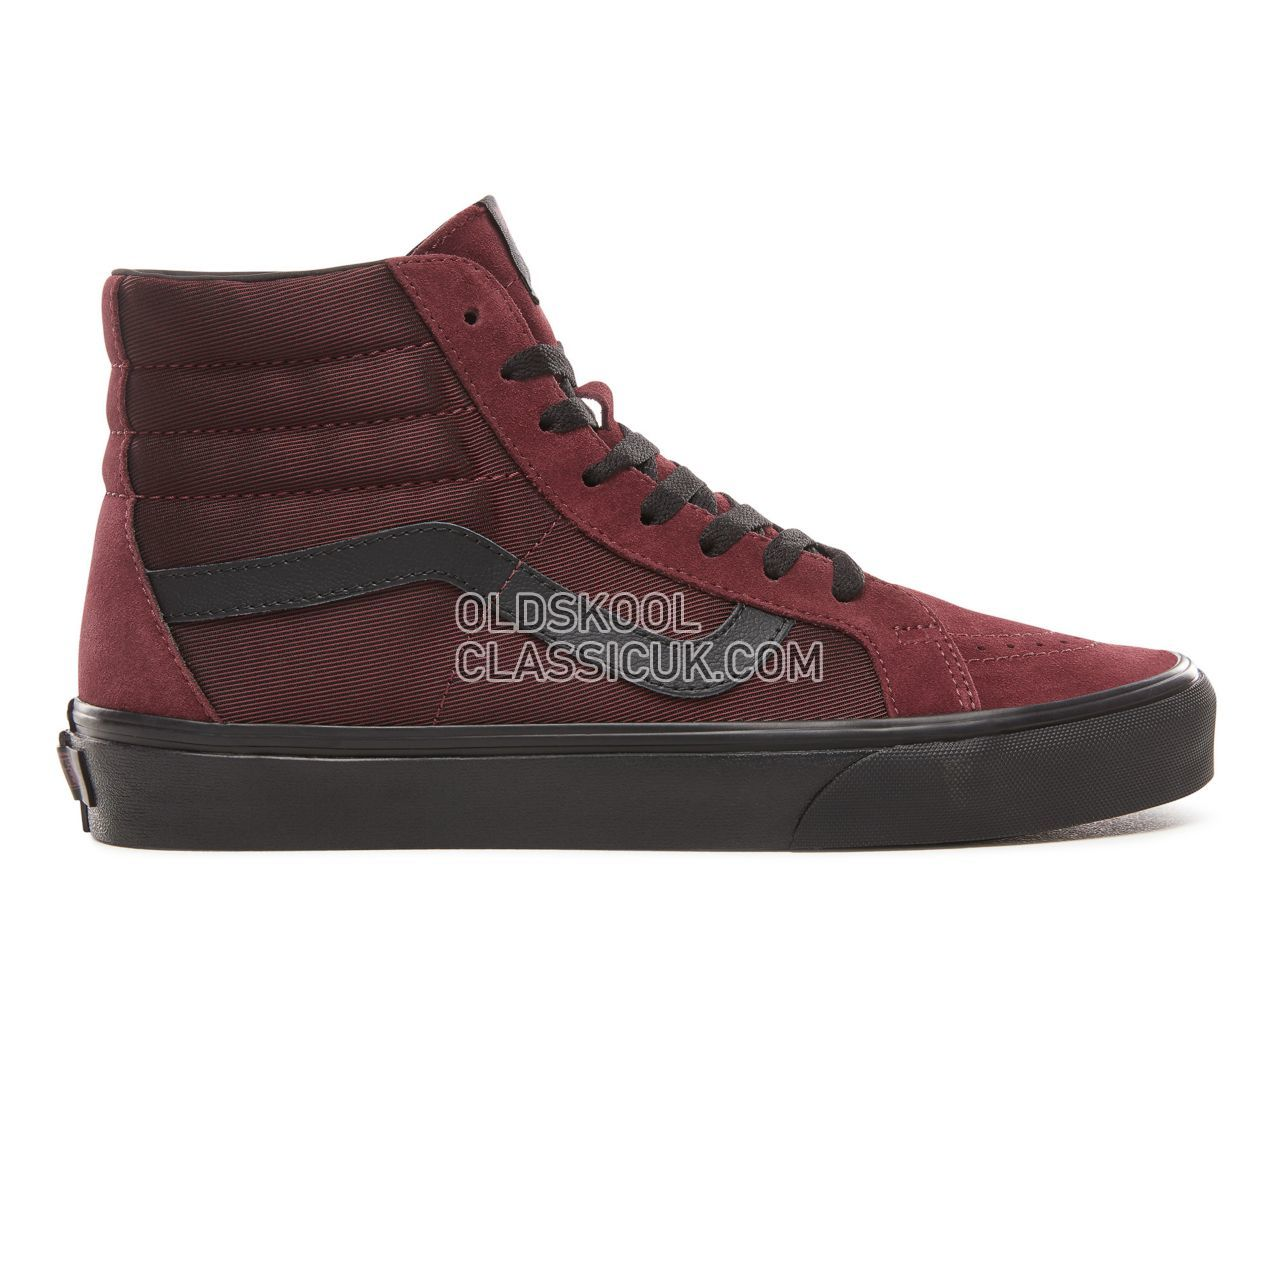 Vans Metallic Twill Sk8-Hi Reissue Sneakers Mens (Metallic Twill) Port Royale/Black VN0A2XSBUQN Shoes